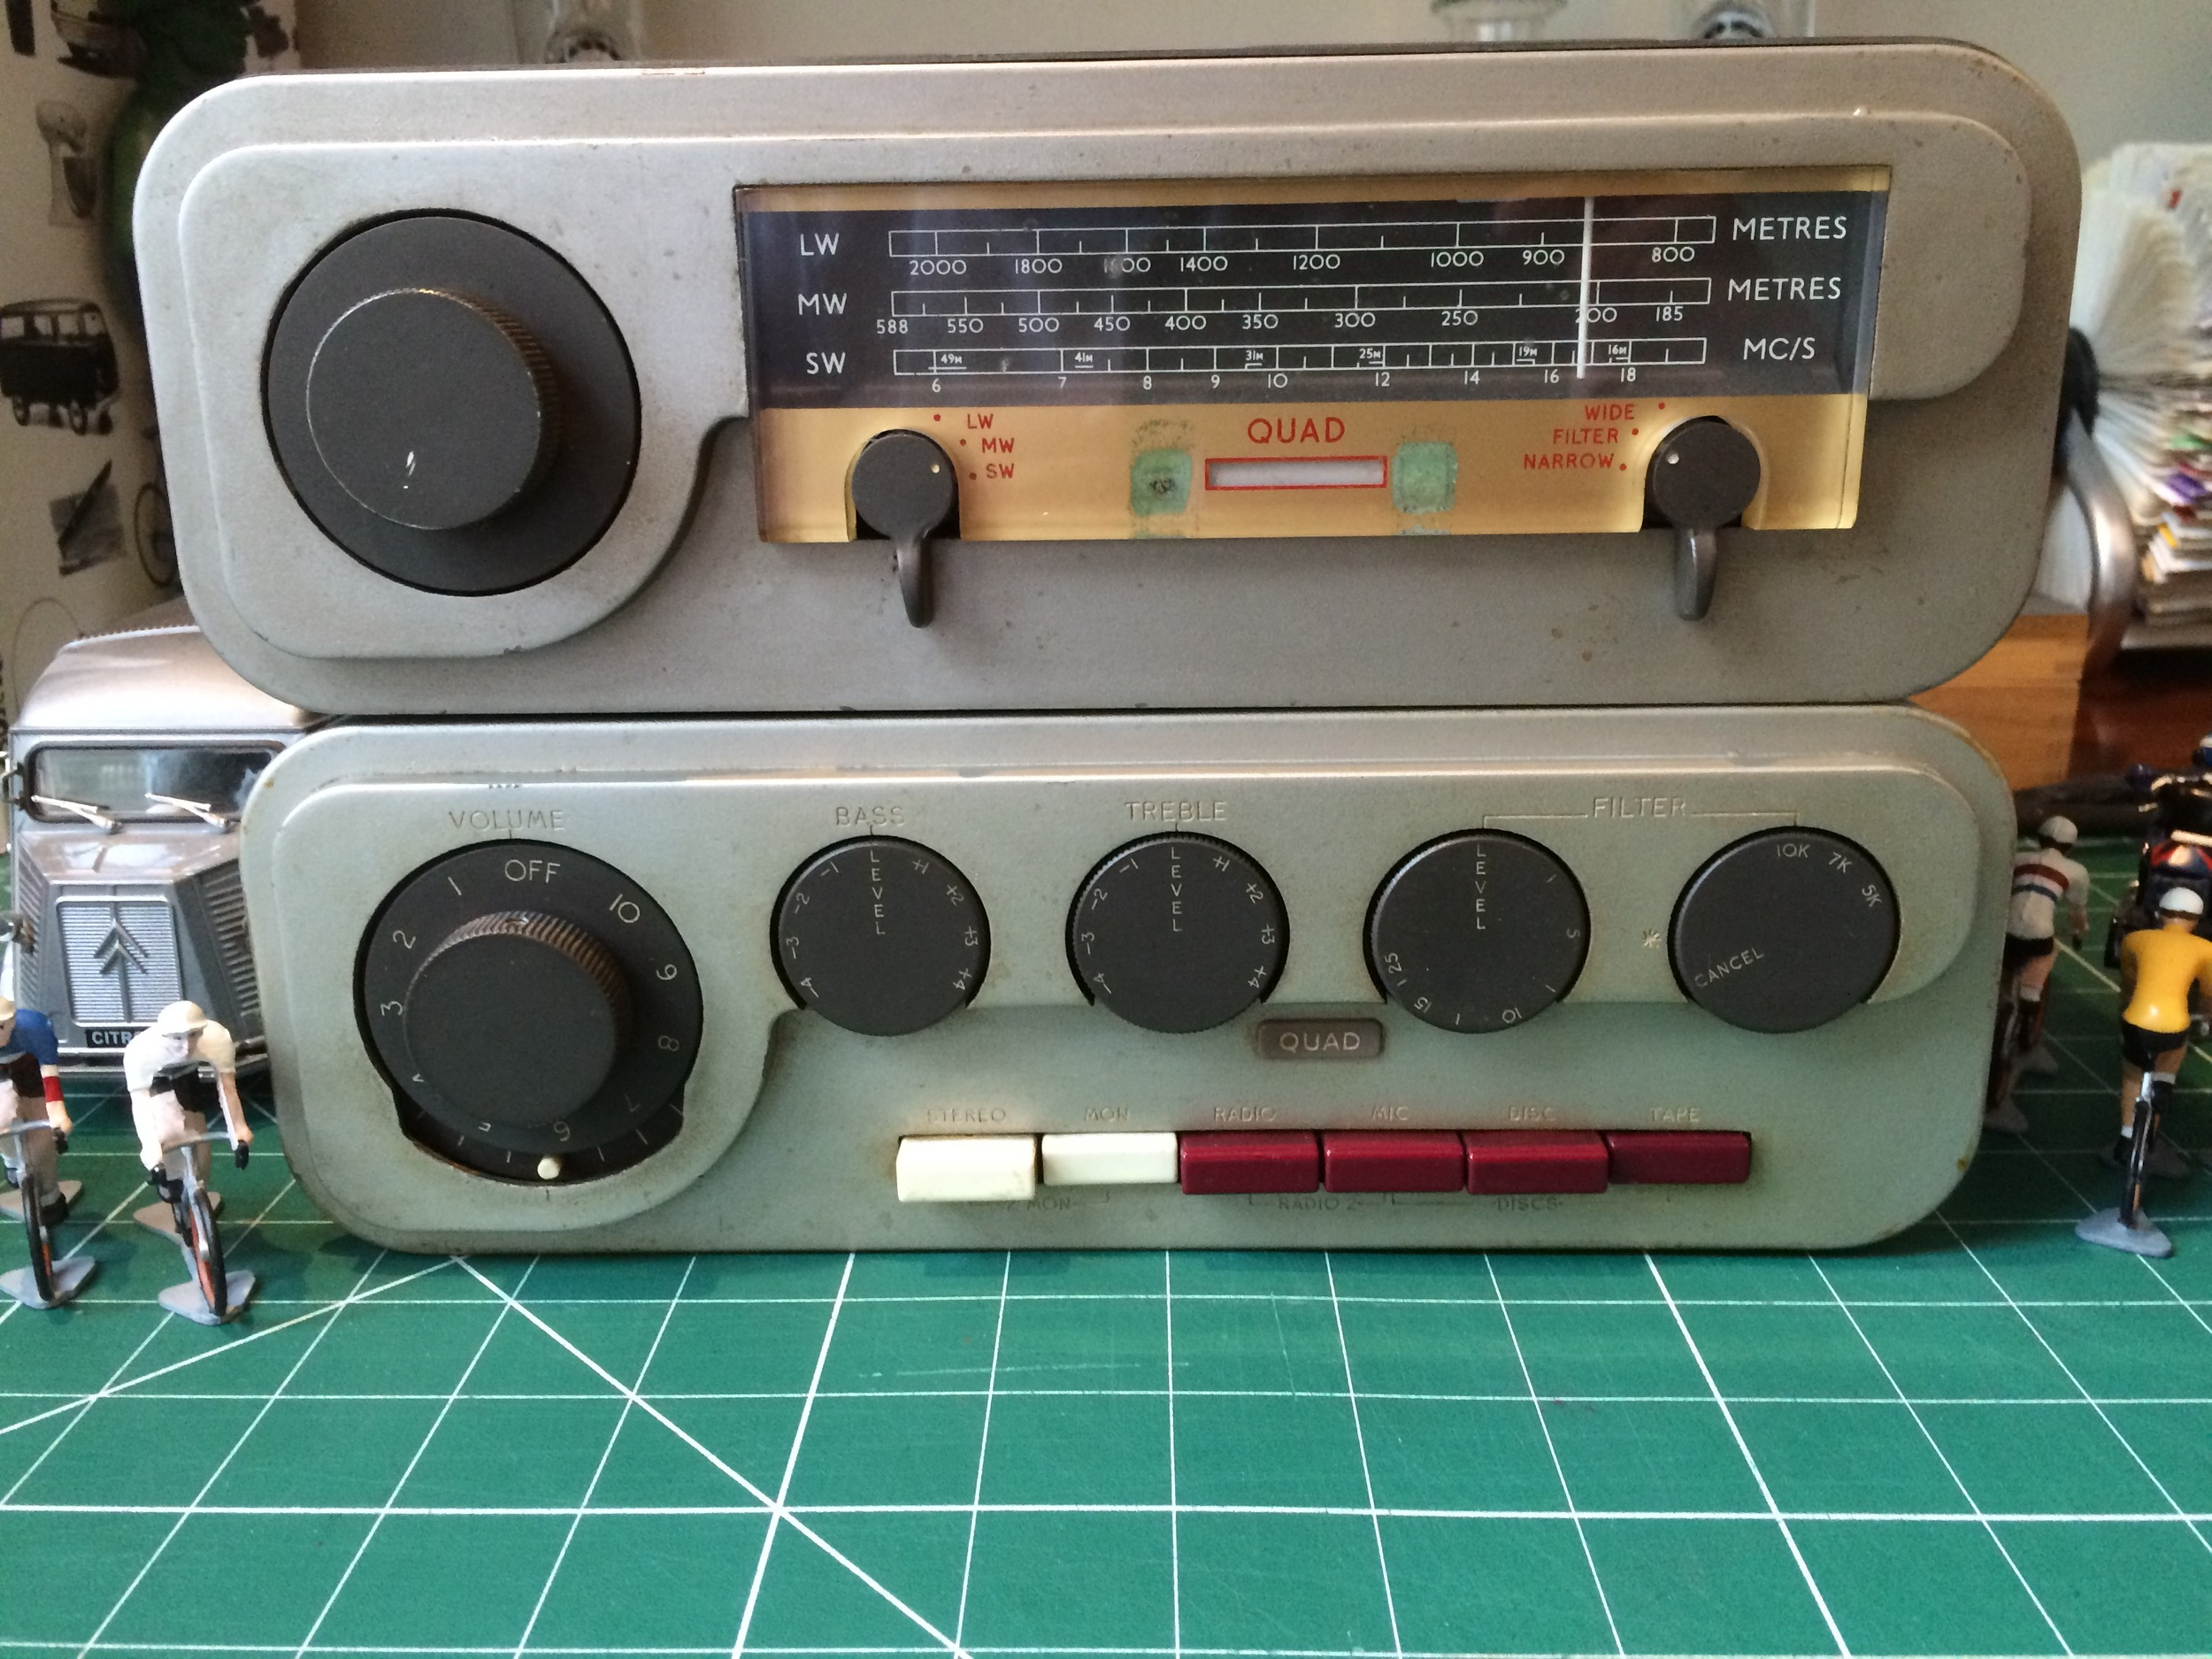 Receiver and Radio (no DAB here)